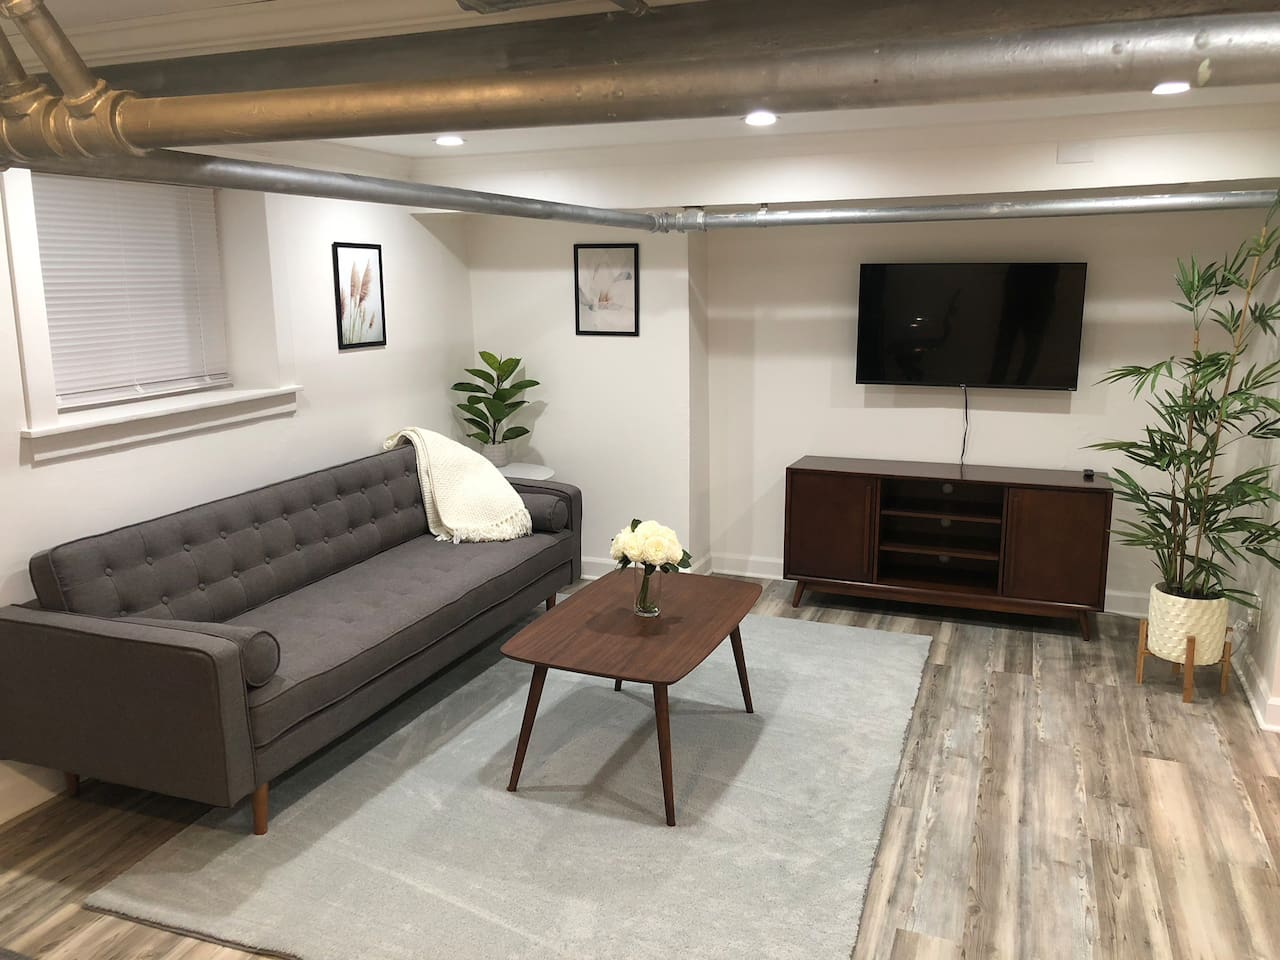 lovely mid century modern style living room with 4k smart tv for all your favorite streaming apps